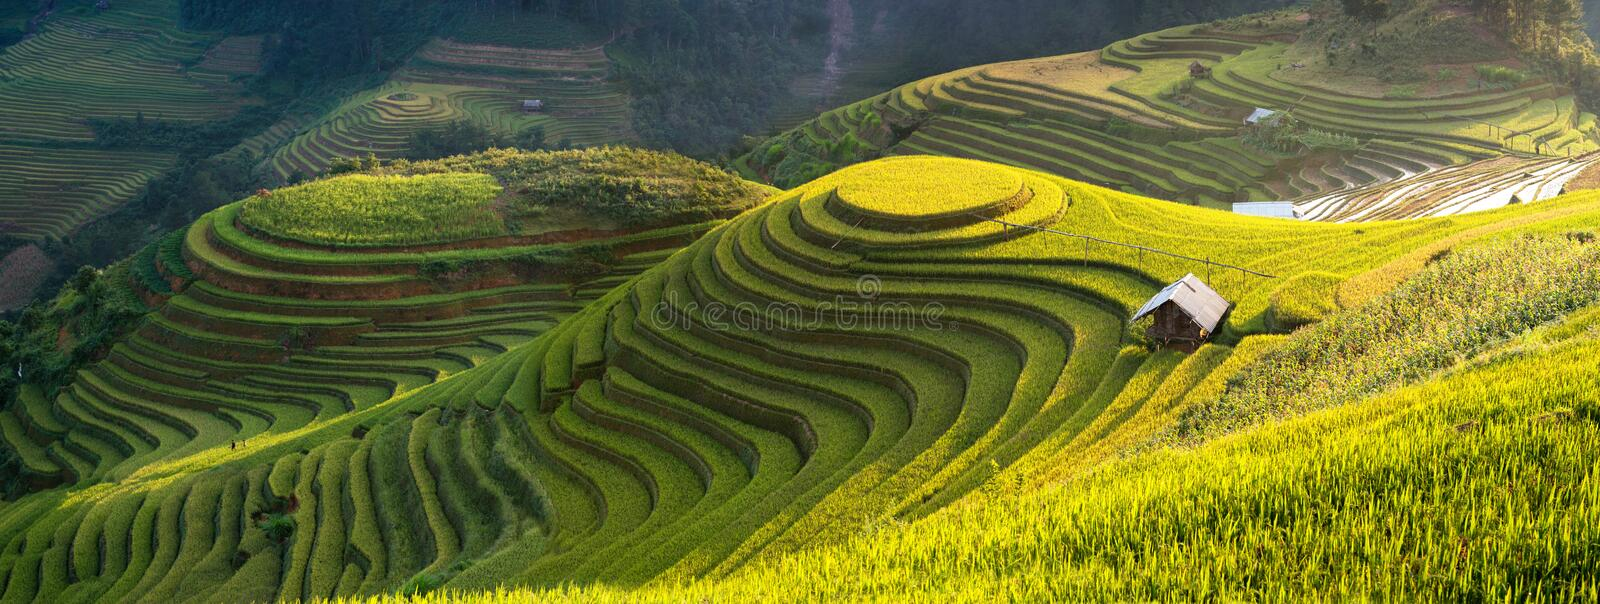 O arroz coloca em terraced de MU Cang Chai, YenBai, Vietname foto de stock royalty free